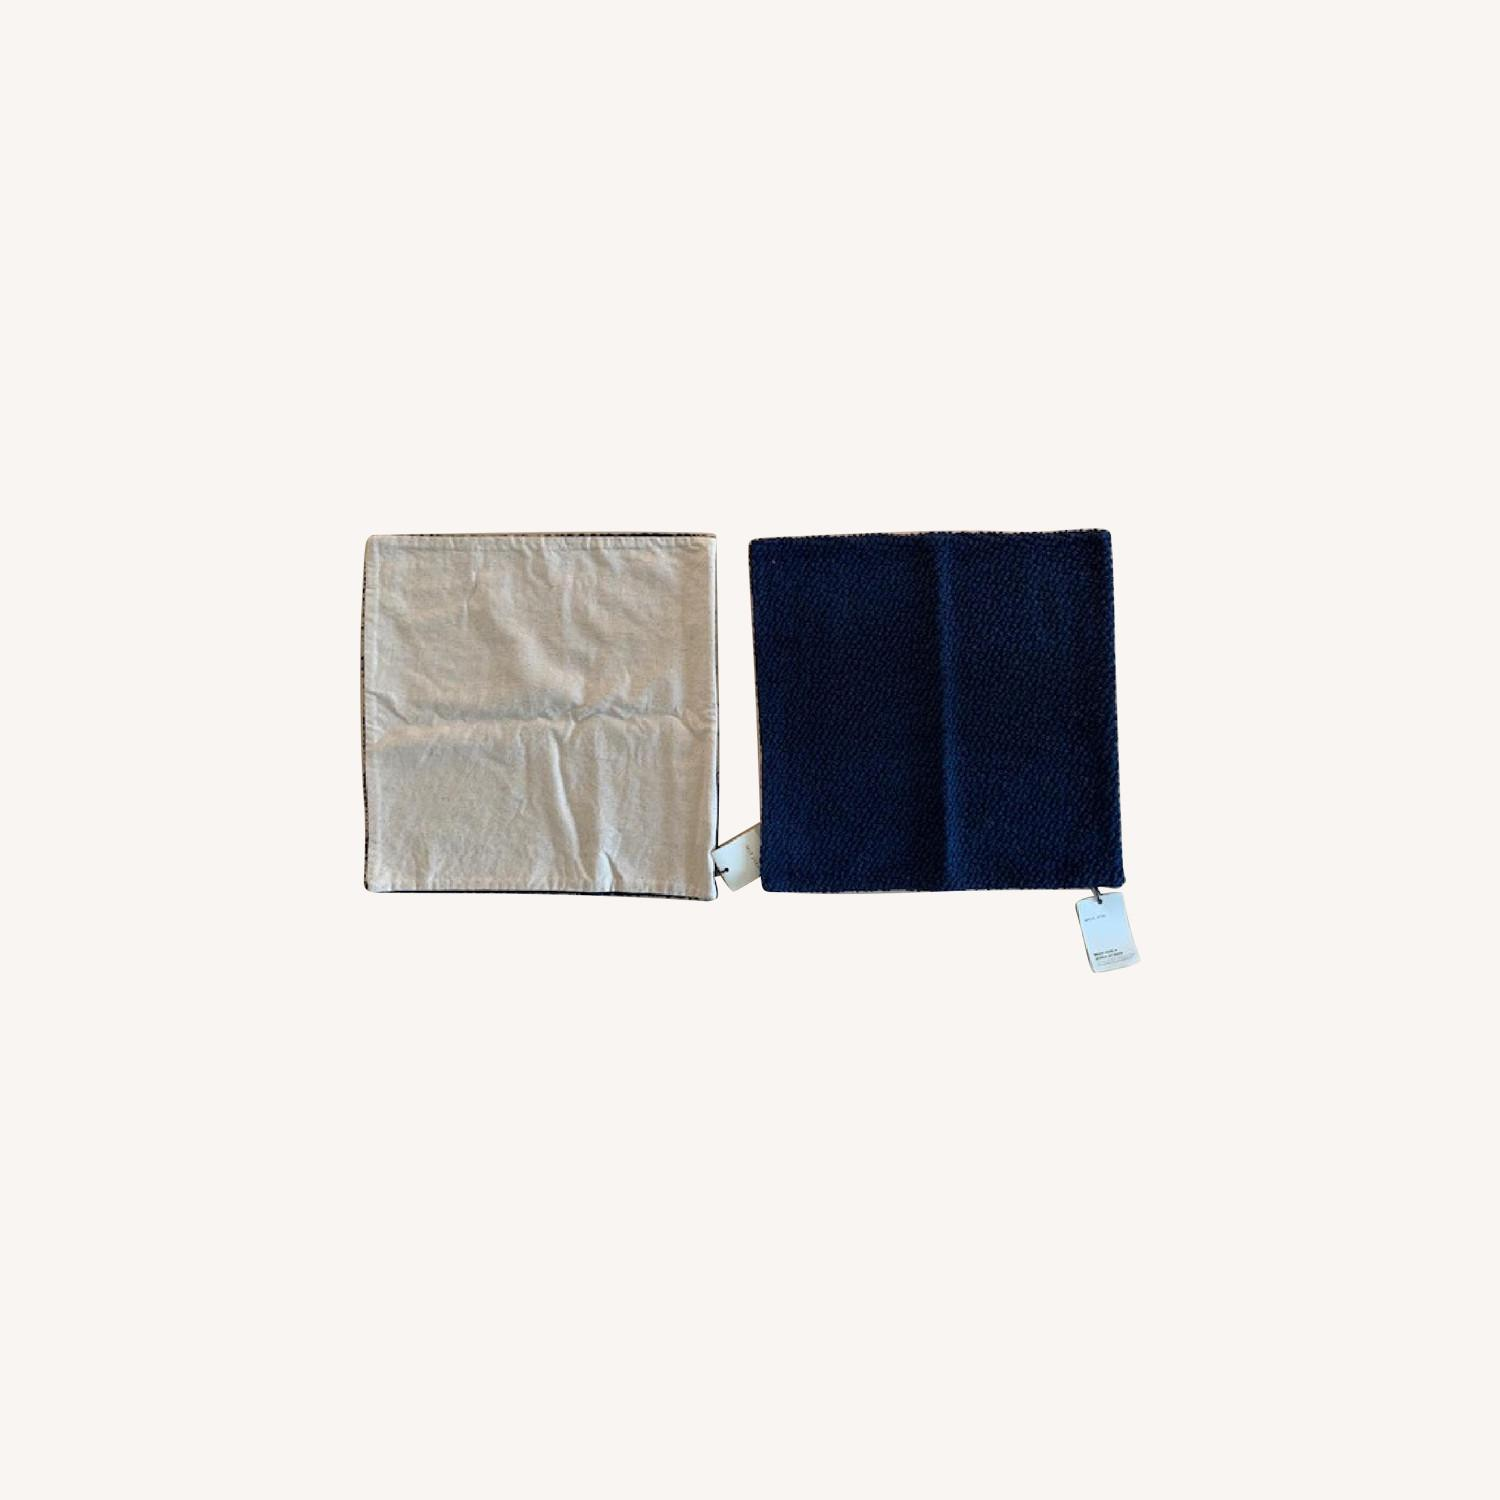 West Elm Boucle Navy Pillow Covers - image-0